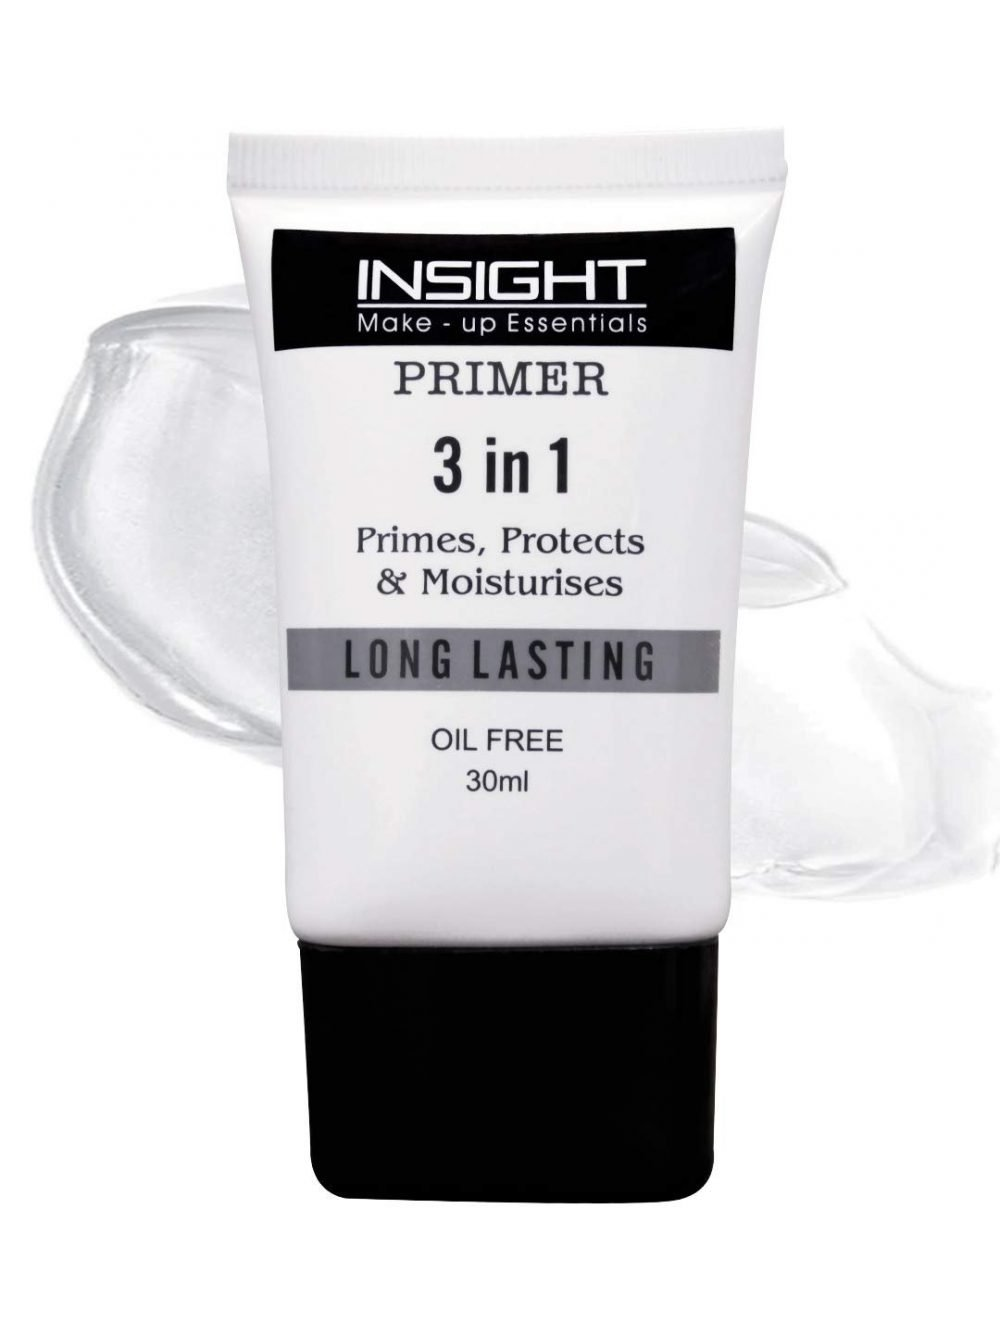 Insight Primer 3in1 long lasting oil free